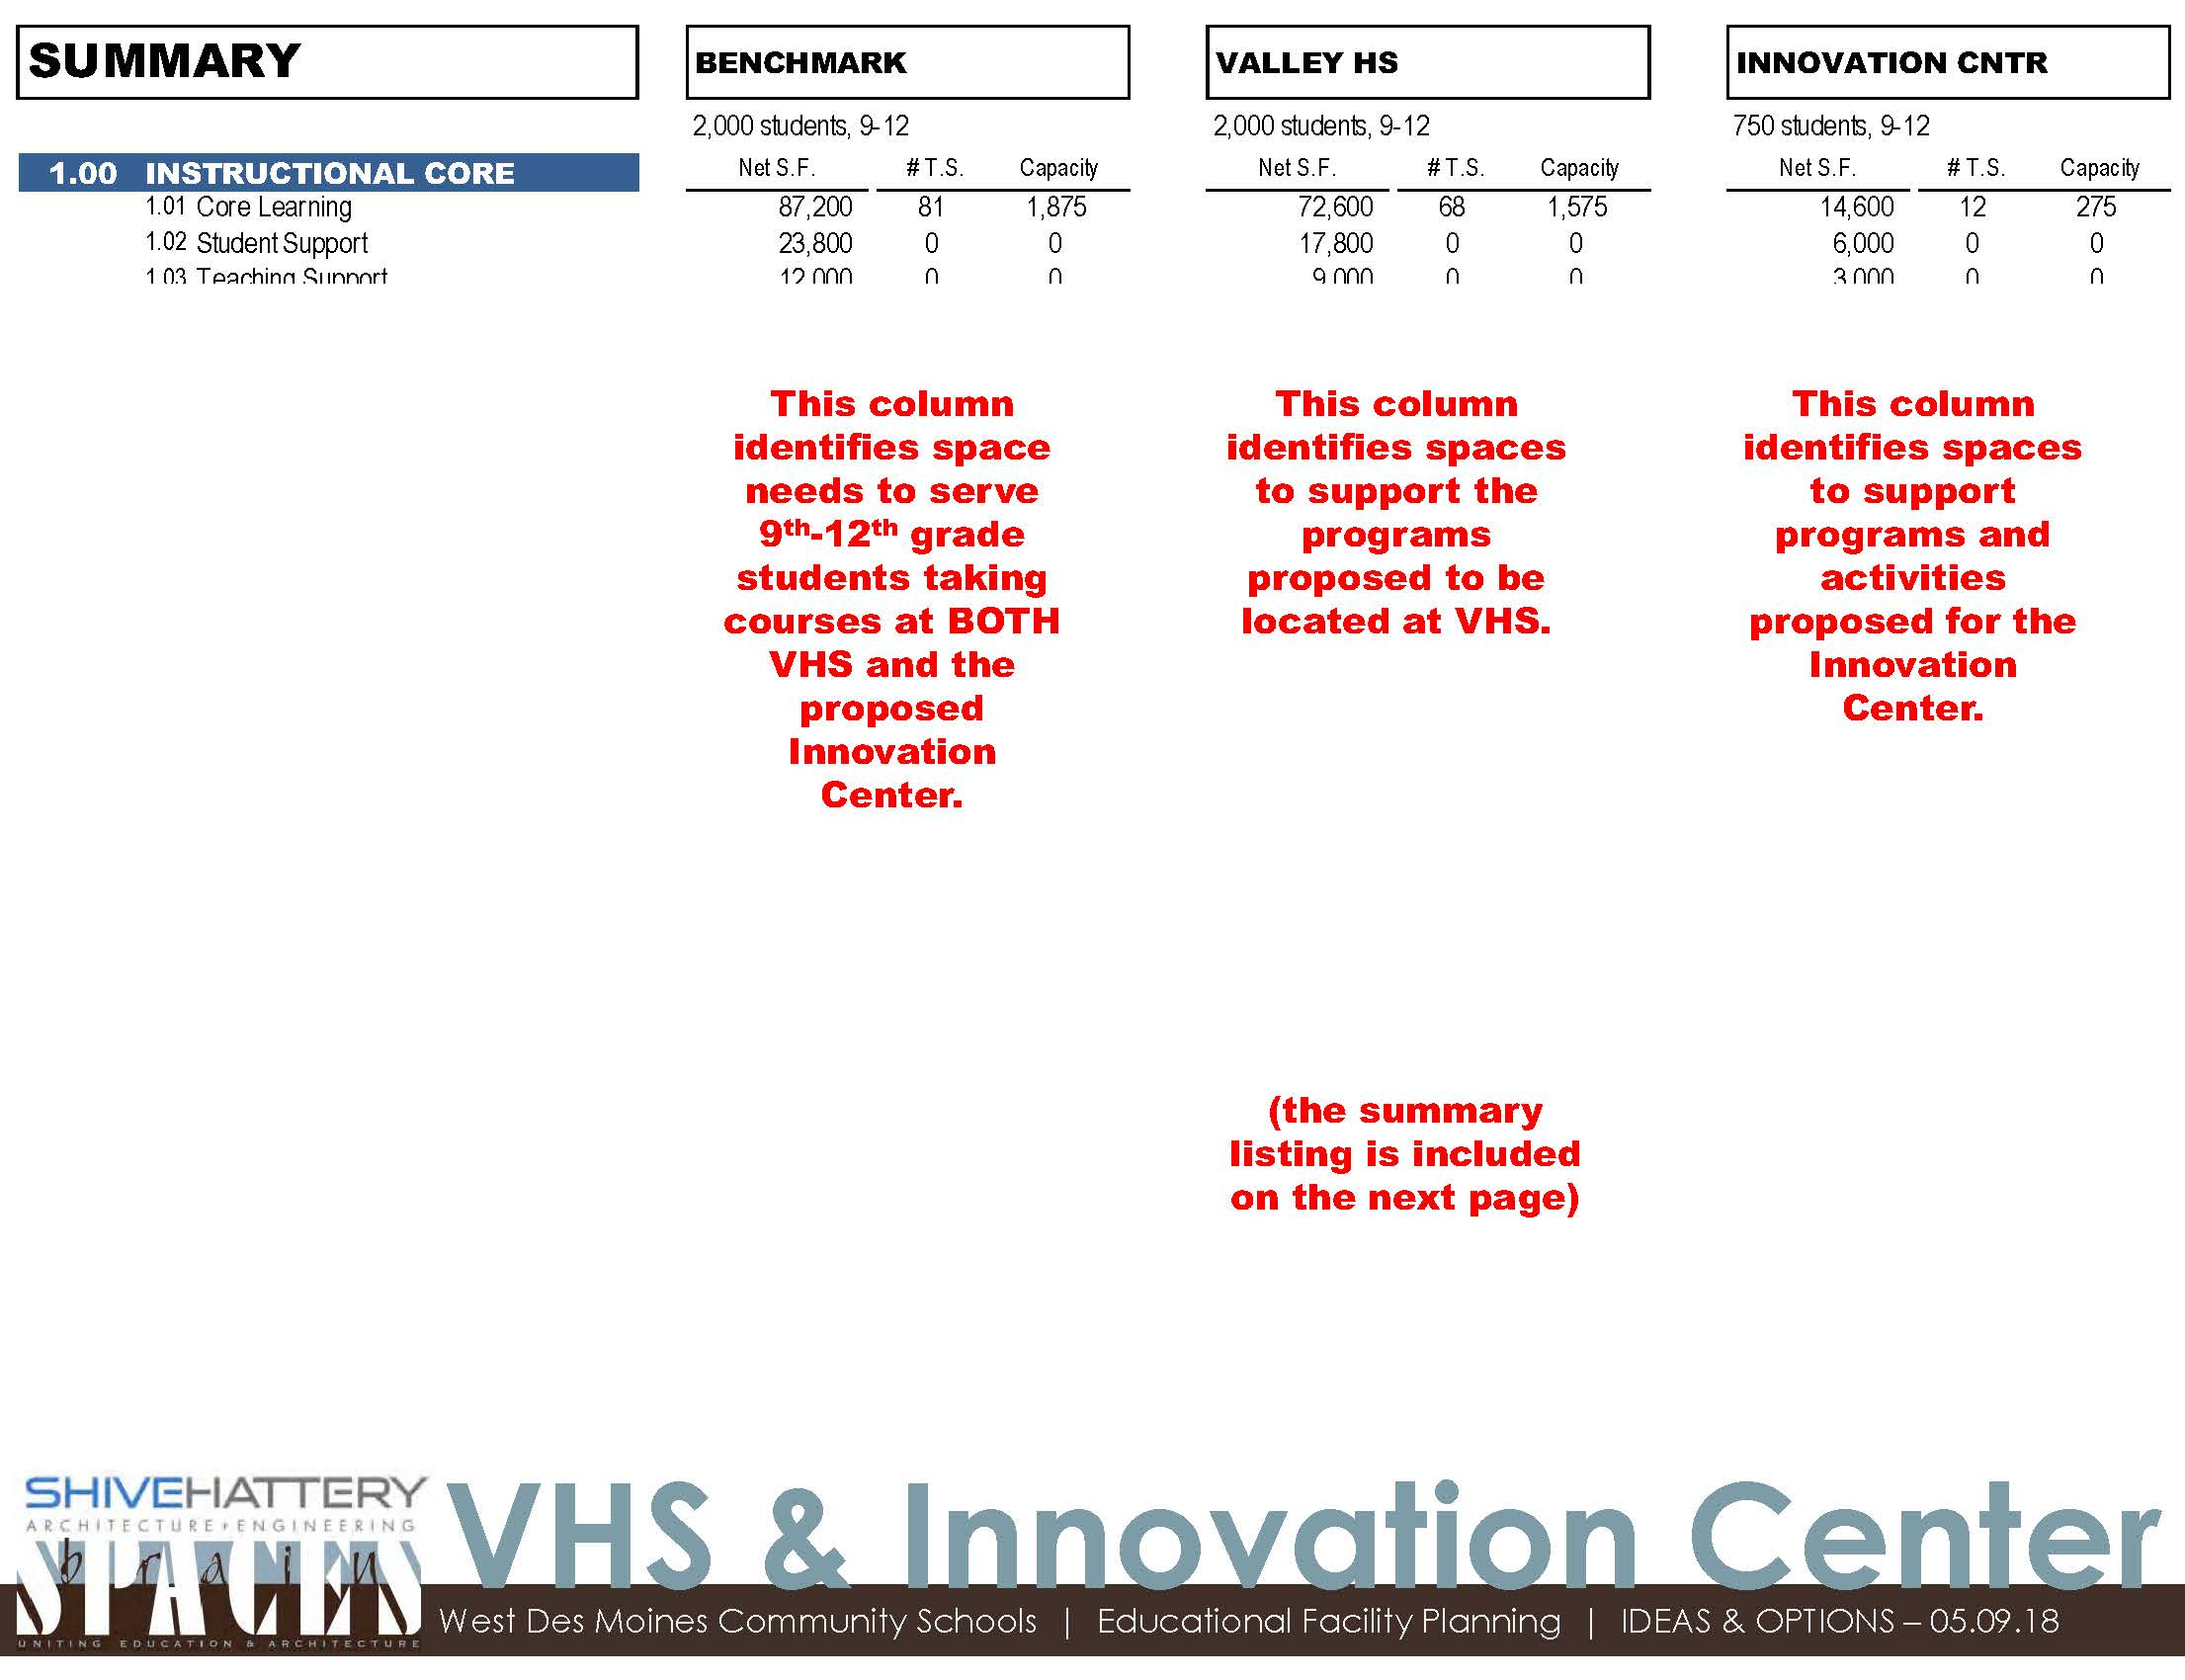 Instructional Core Benchmarks  This graphic indicates square footage needs to support programs and activities at both Valley and the Innovation Center.   Click on the graphic to view full image.